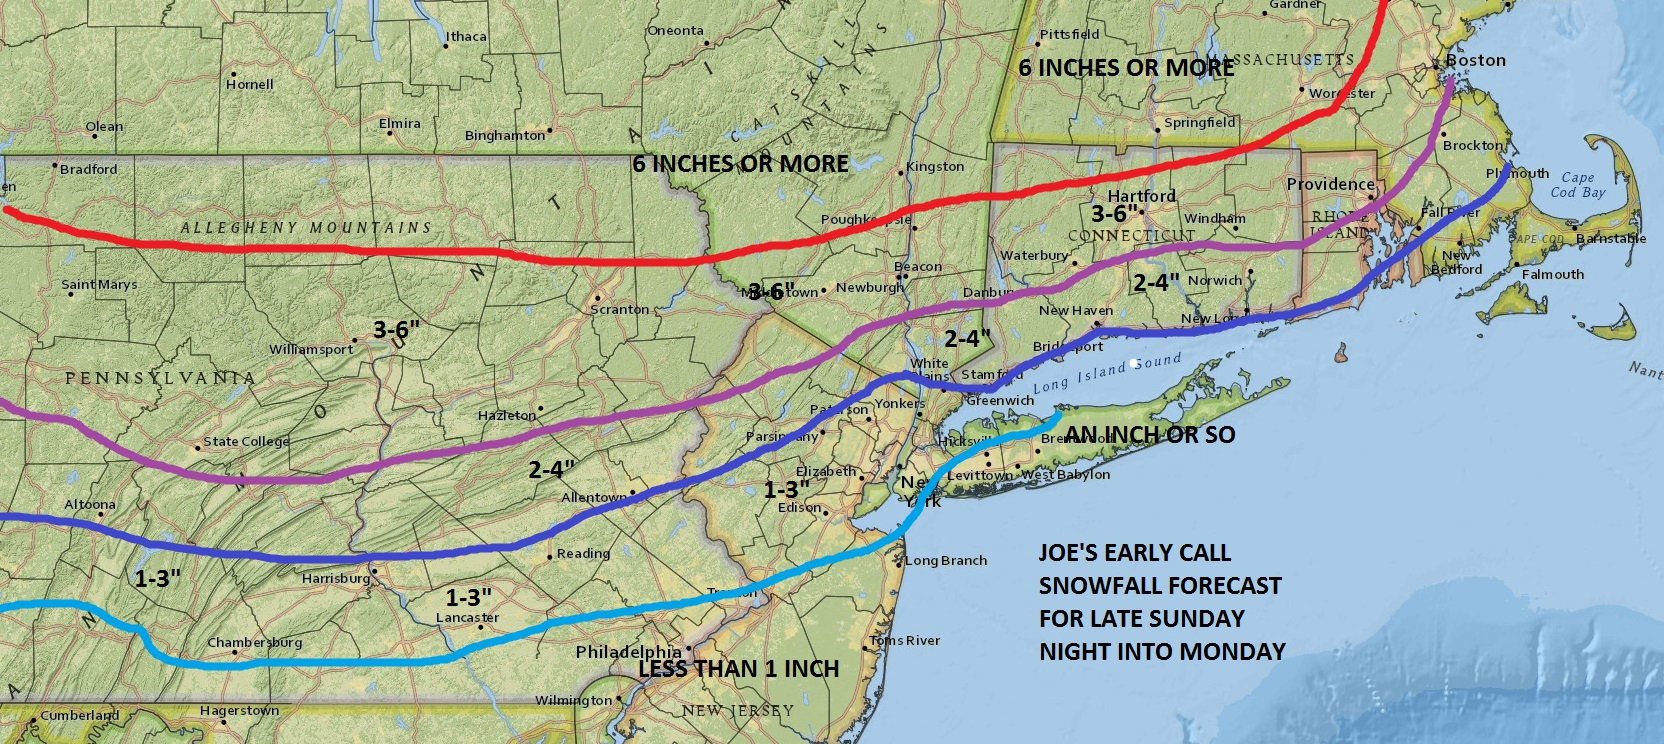 Snow Forecast Maps New Jersey New York Connecticut - Weather Updates ...